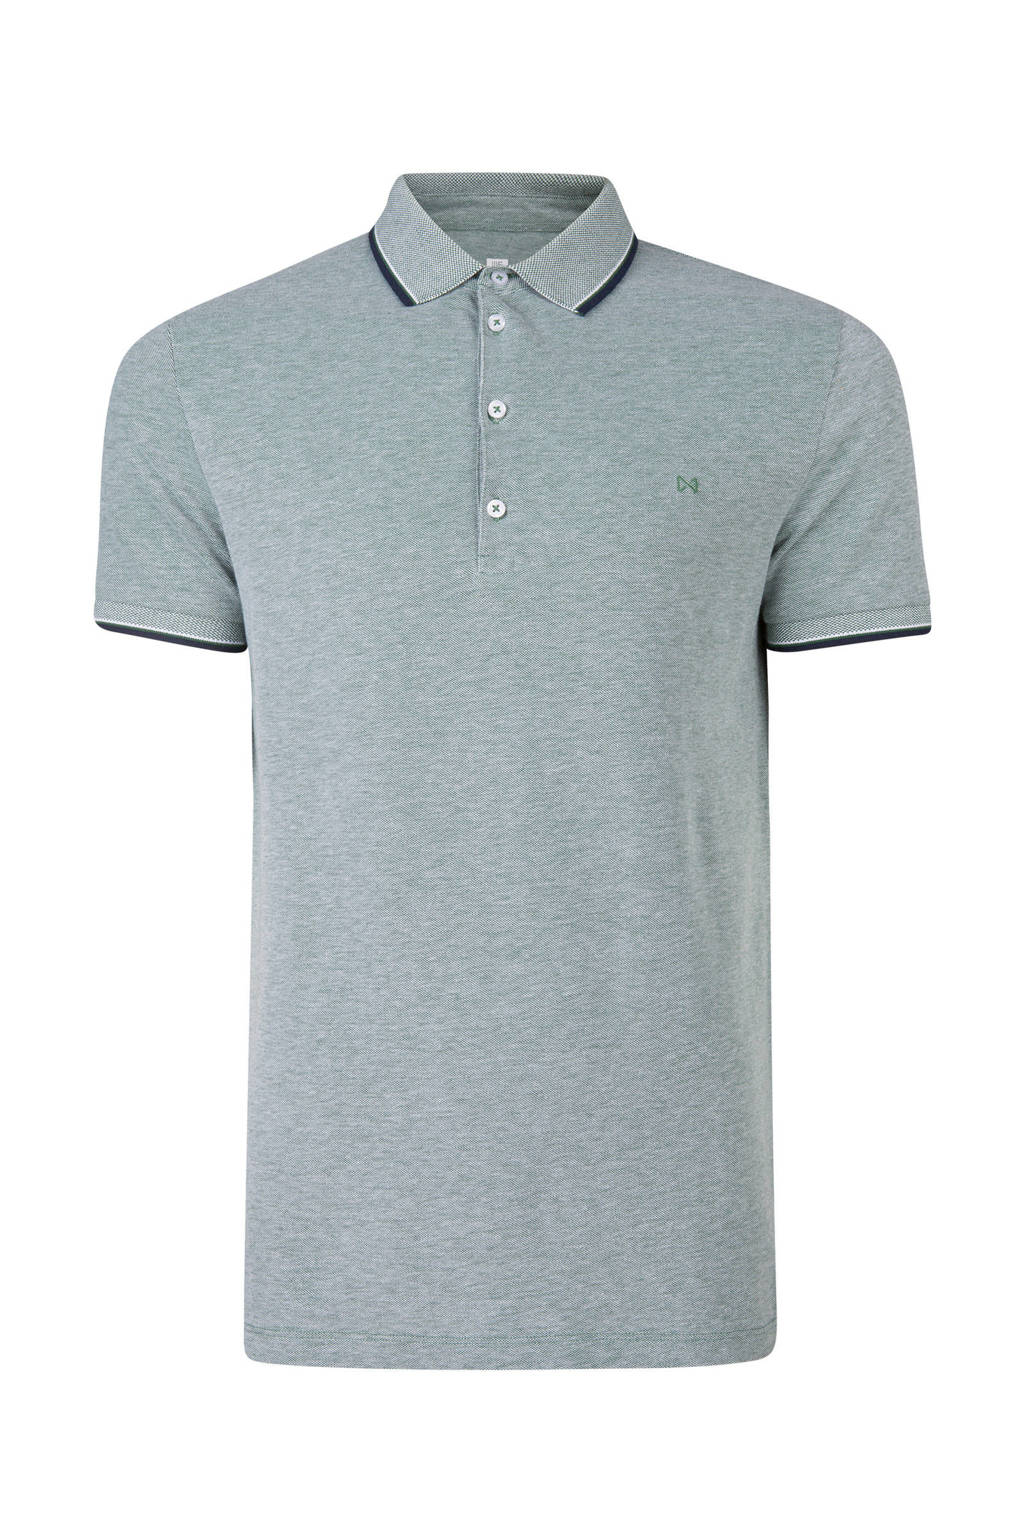 WE Fashion gemêleerde slim fit polo, Grijsgroen